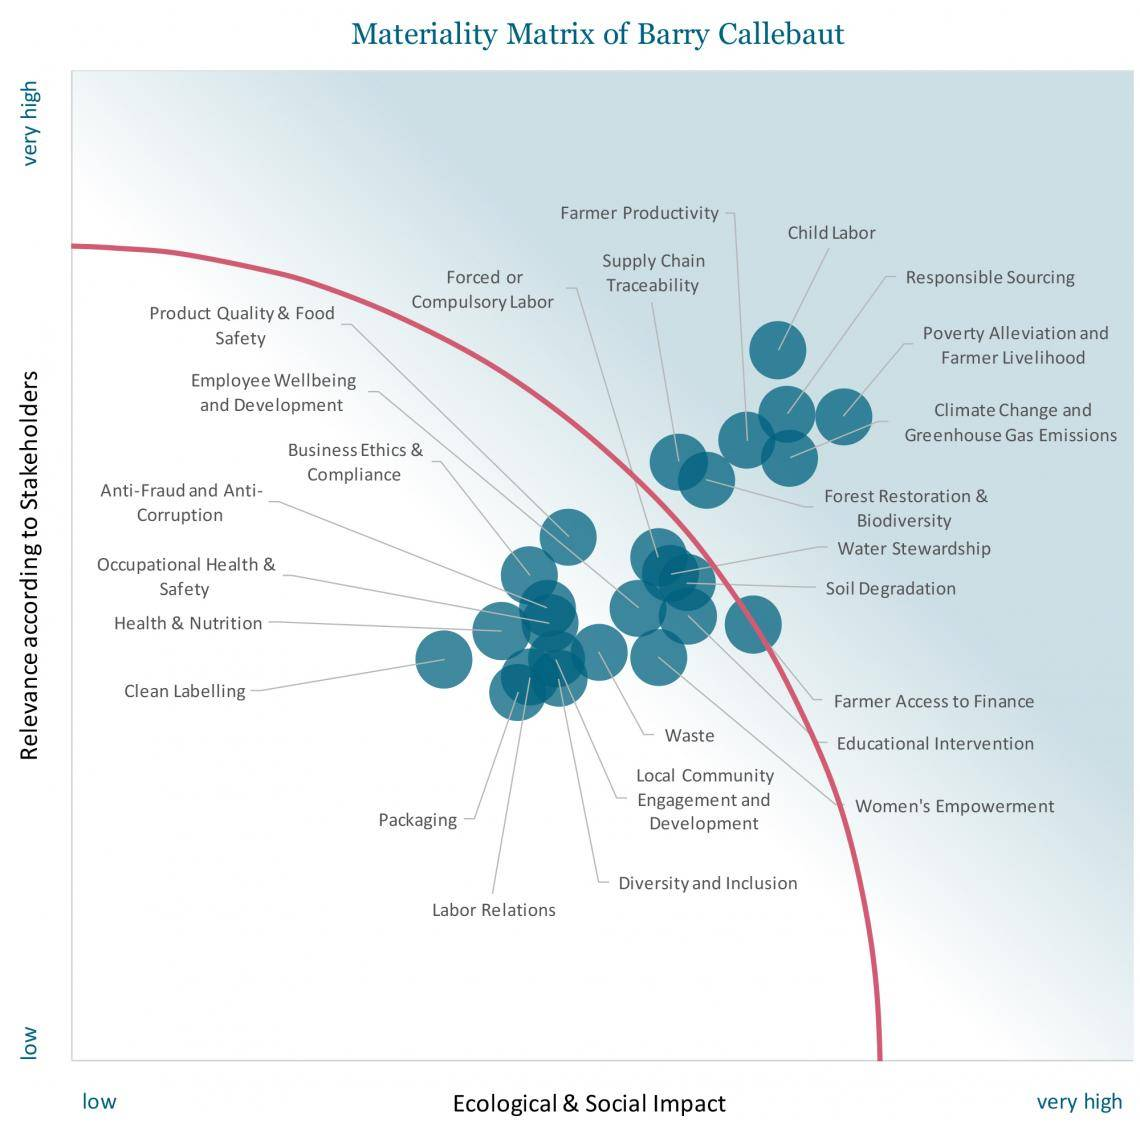 Barry Callebaut Materiality Assessment 2018